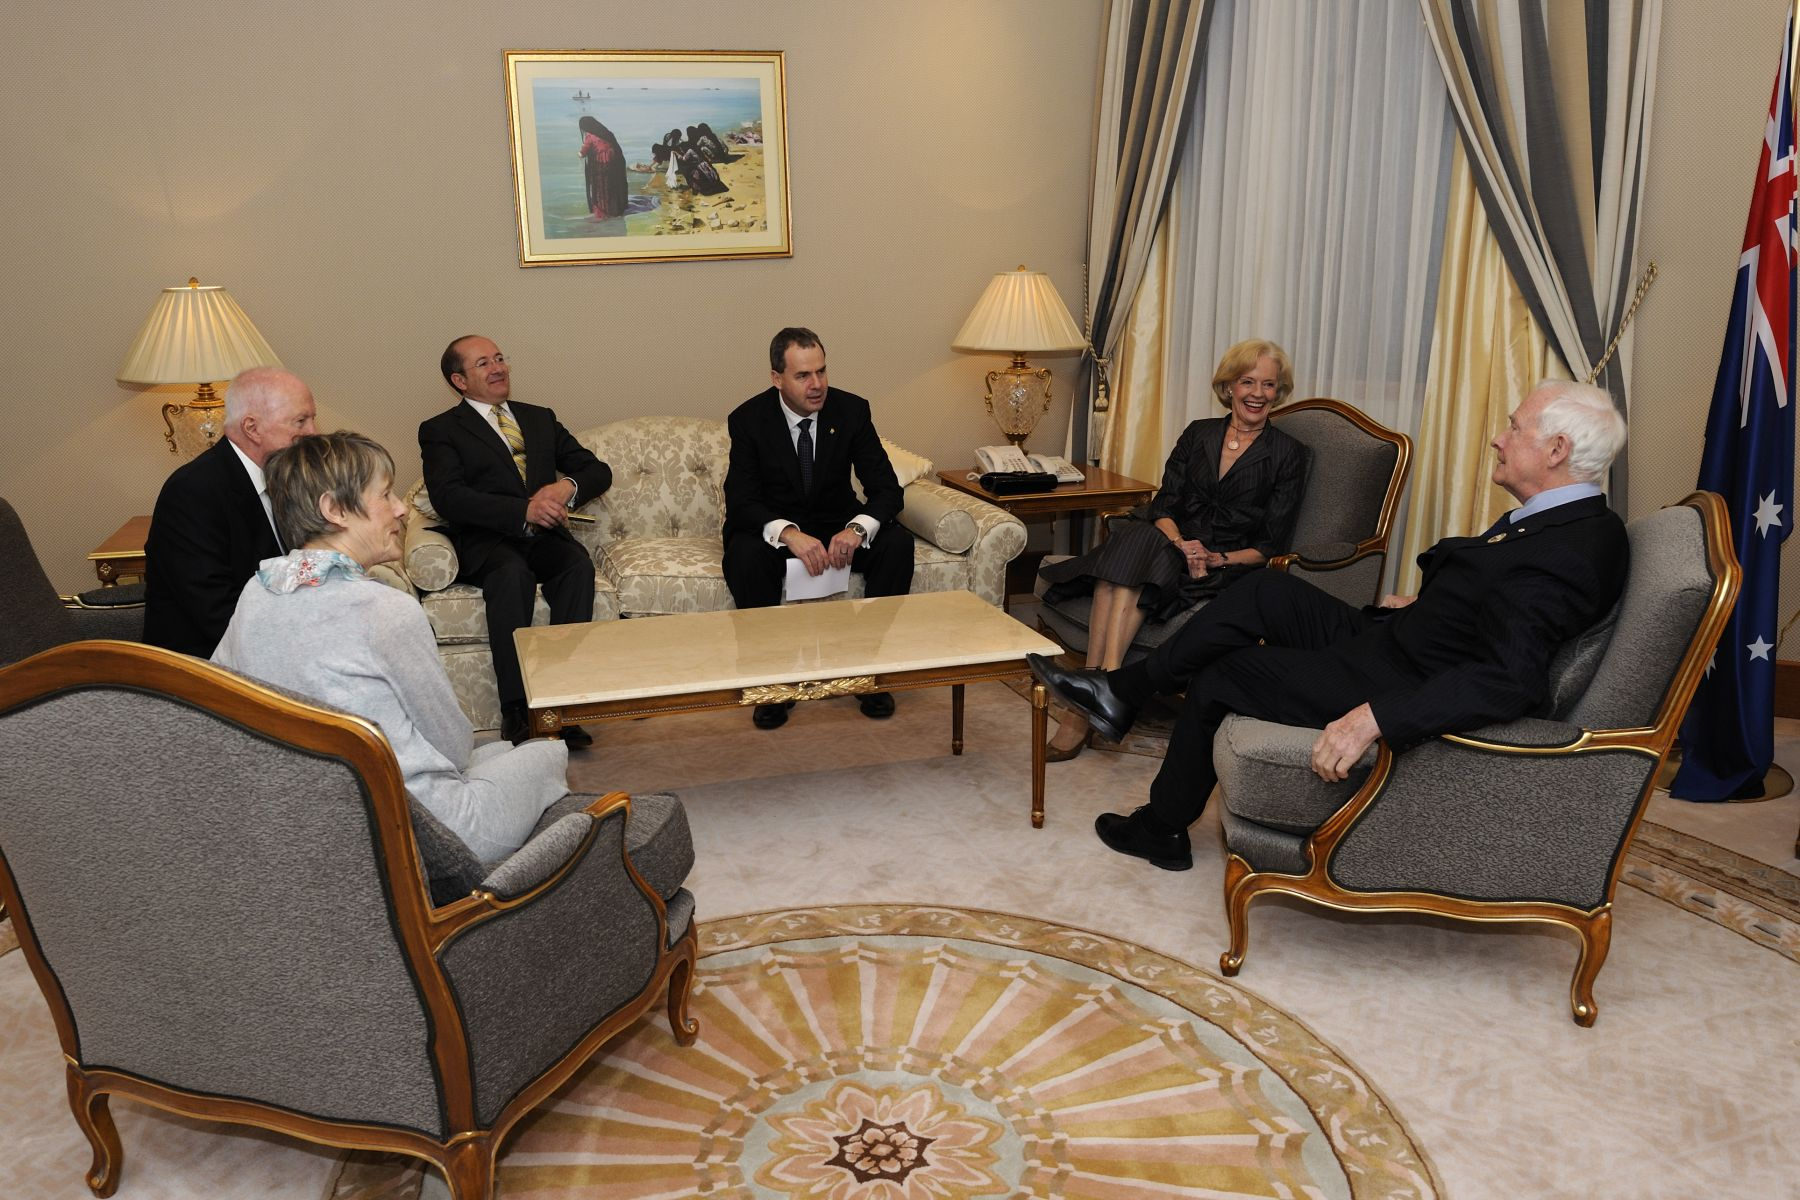 During their visit to Kuwait, Their Excellencies met with Their Excellencies Ms. Quentin Bryce, Governor-General of Australia and Mr. Michael Bryce.